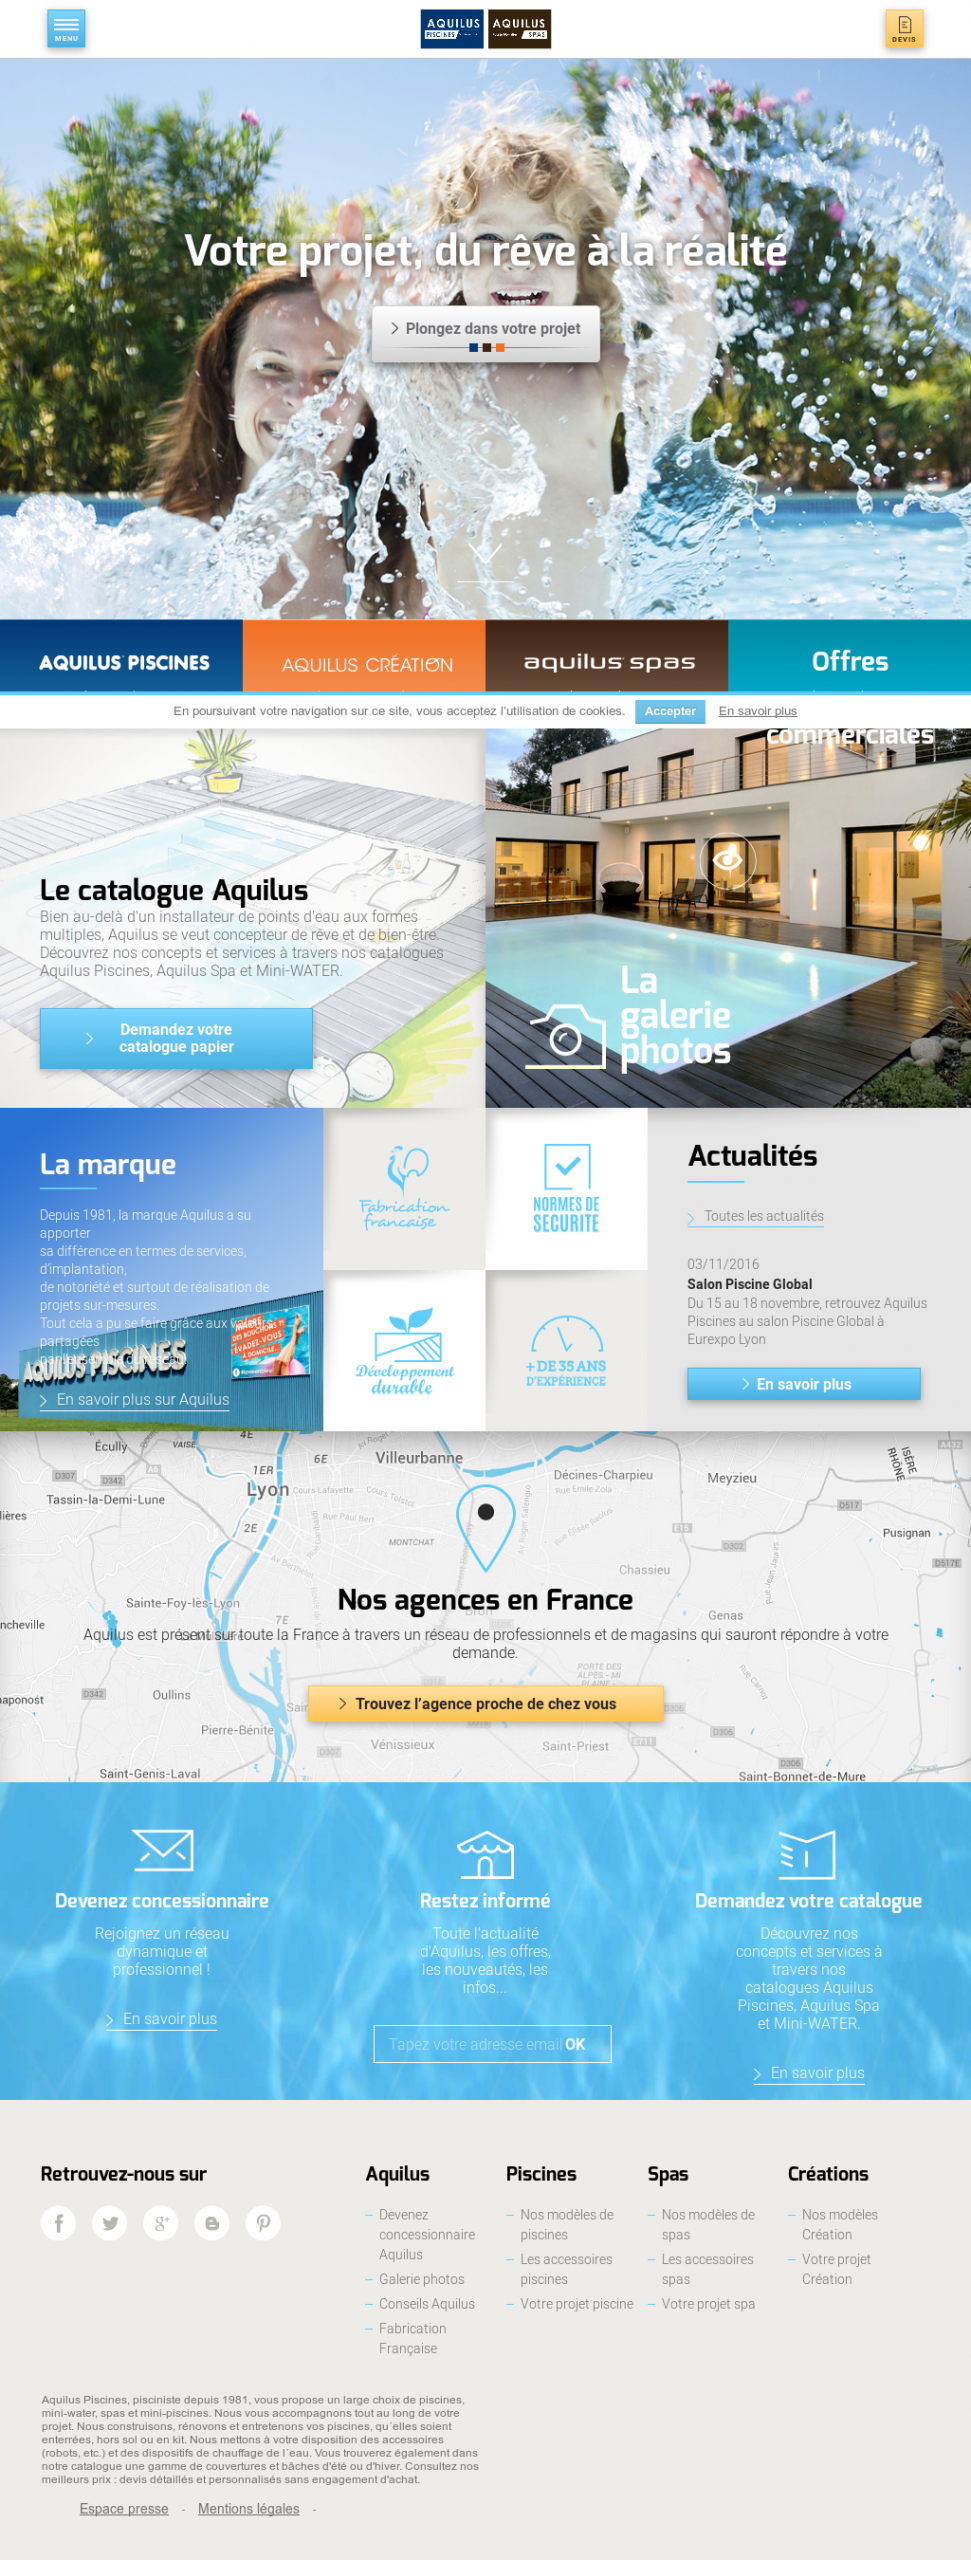 Aquilus, Piscines Et Spas Competitors, Revenue And Employees ... dedans Piscine Aquilus